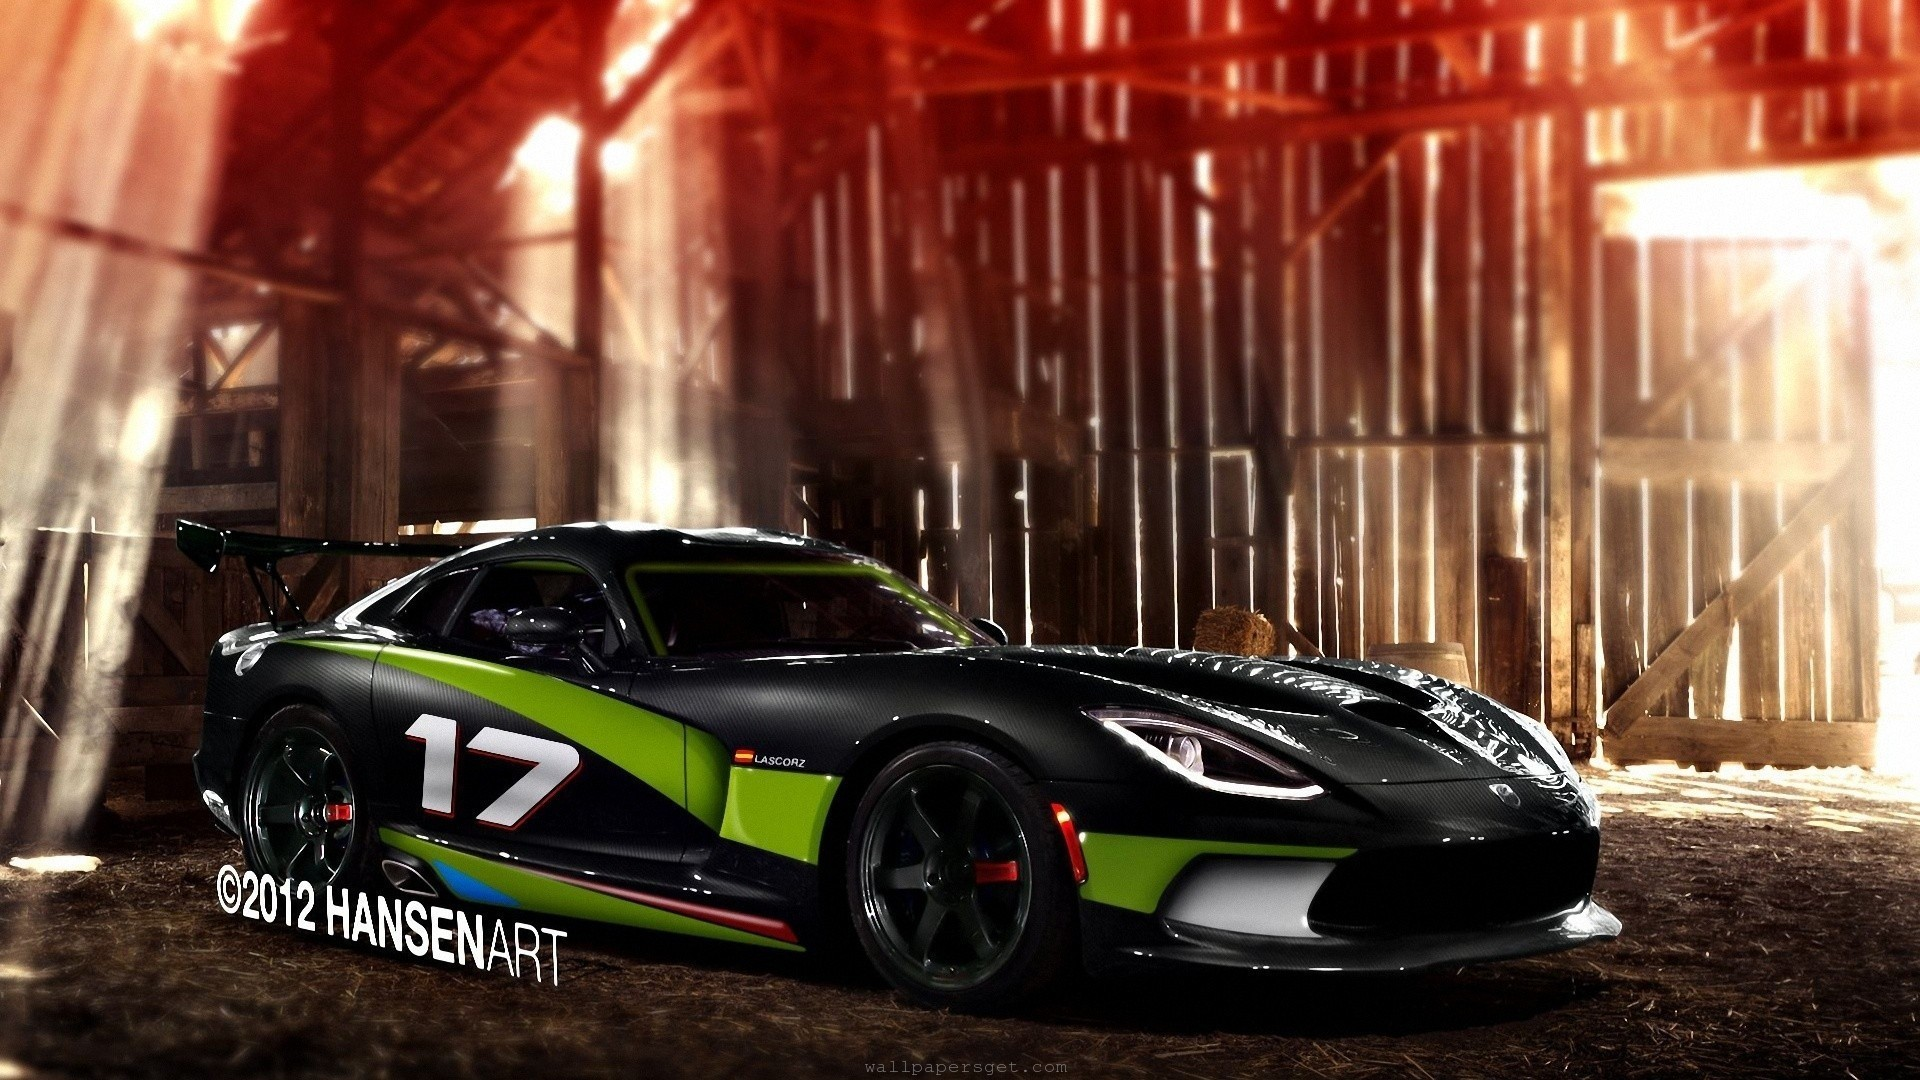 Res: 1920x1080, Viper tuning races modified speed muscle car wallpaper